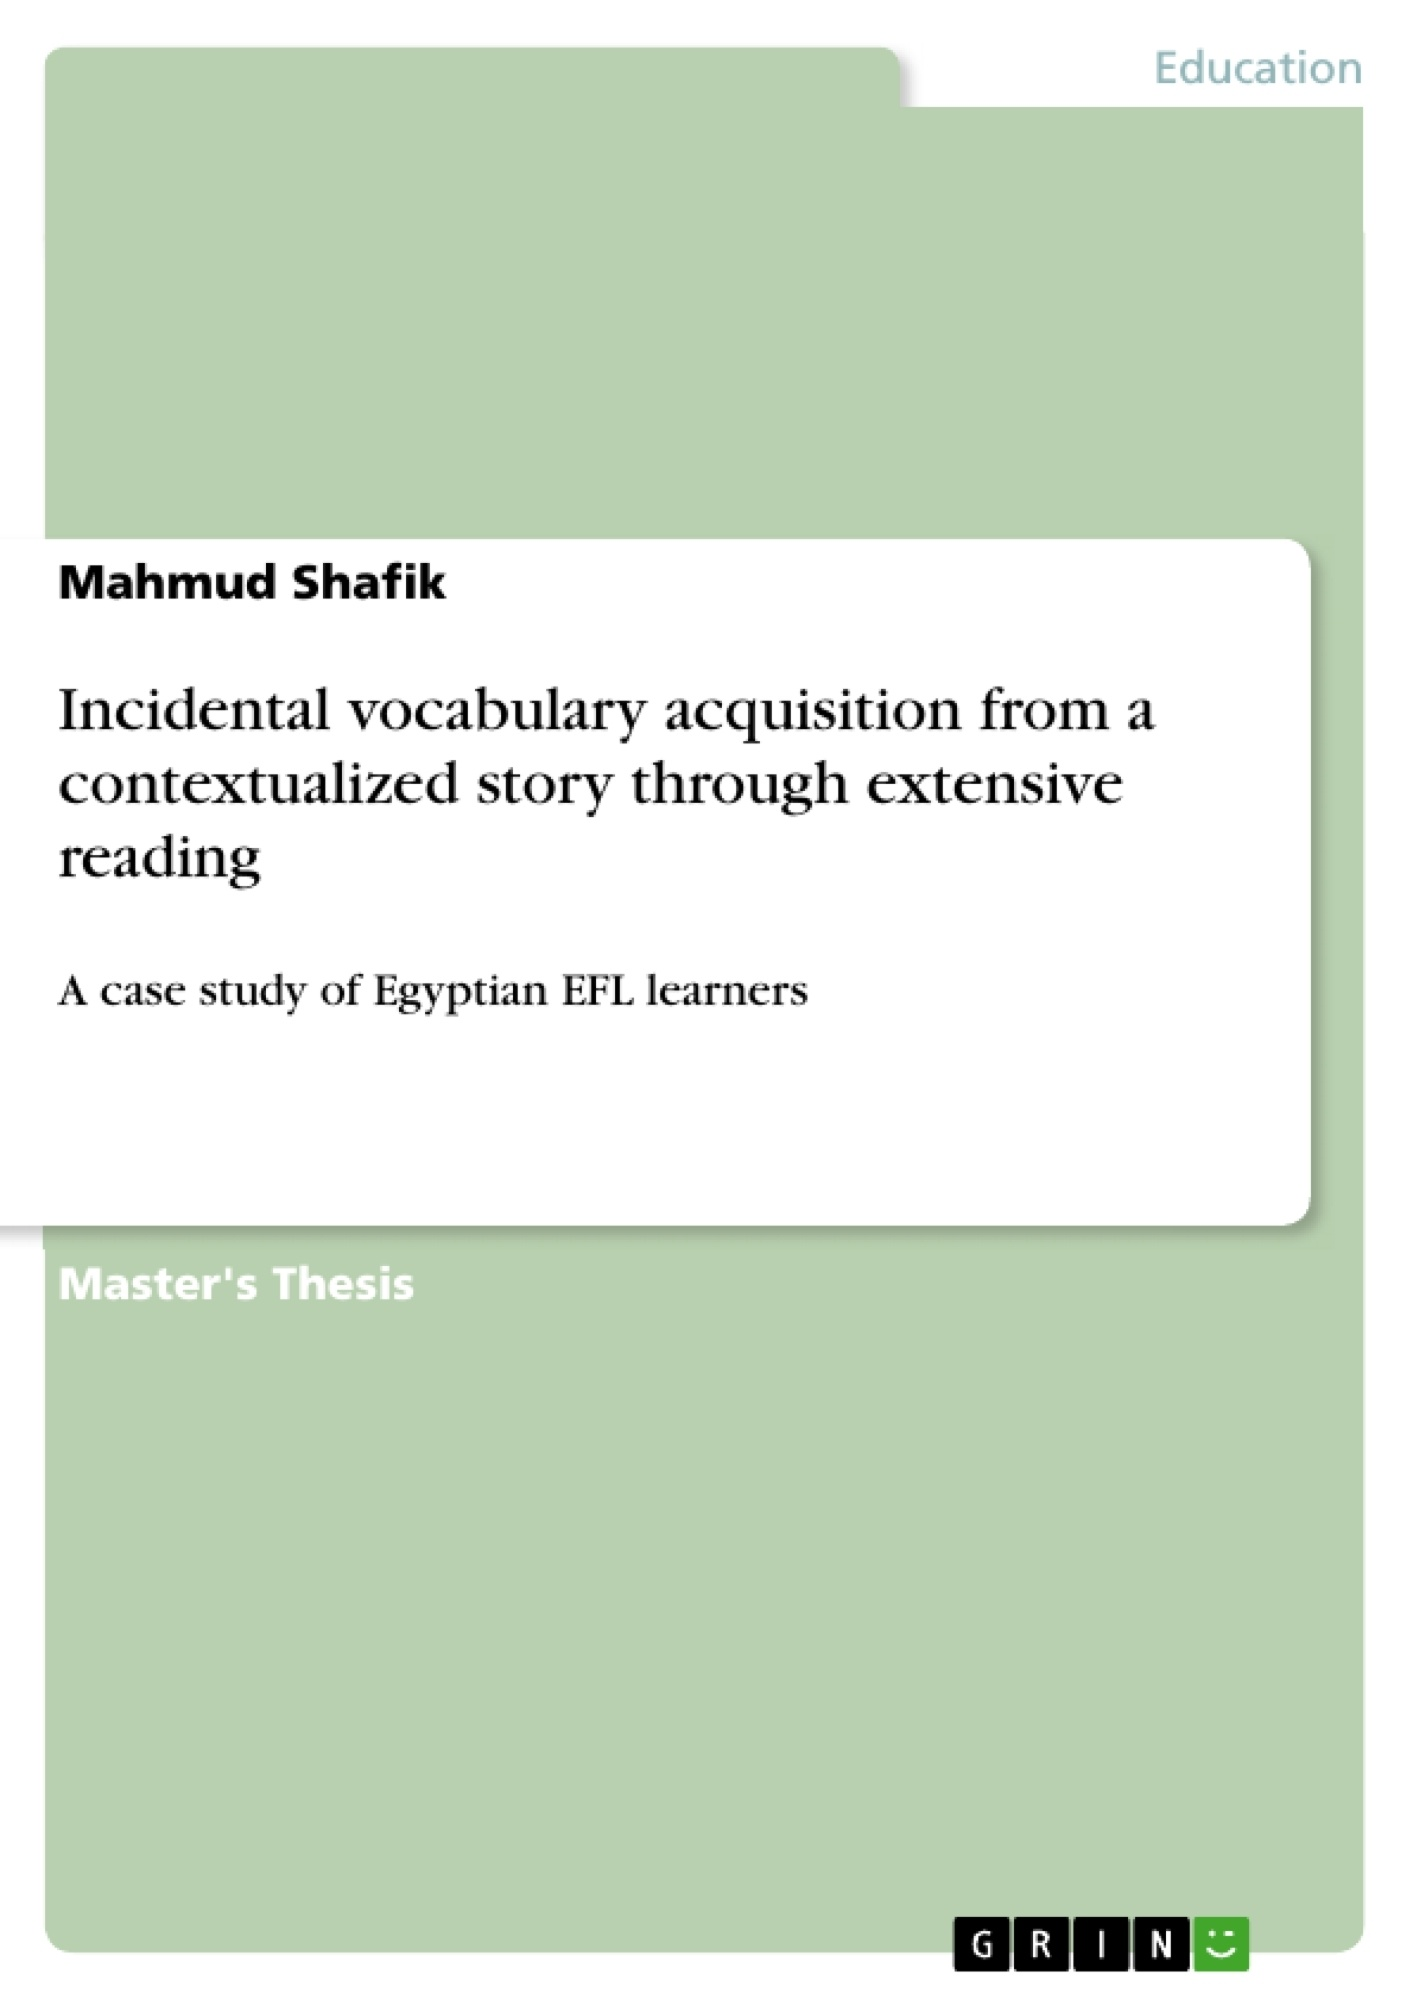 Title: Incidental vocabulary acquisition from a contextualized story through extensive reading